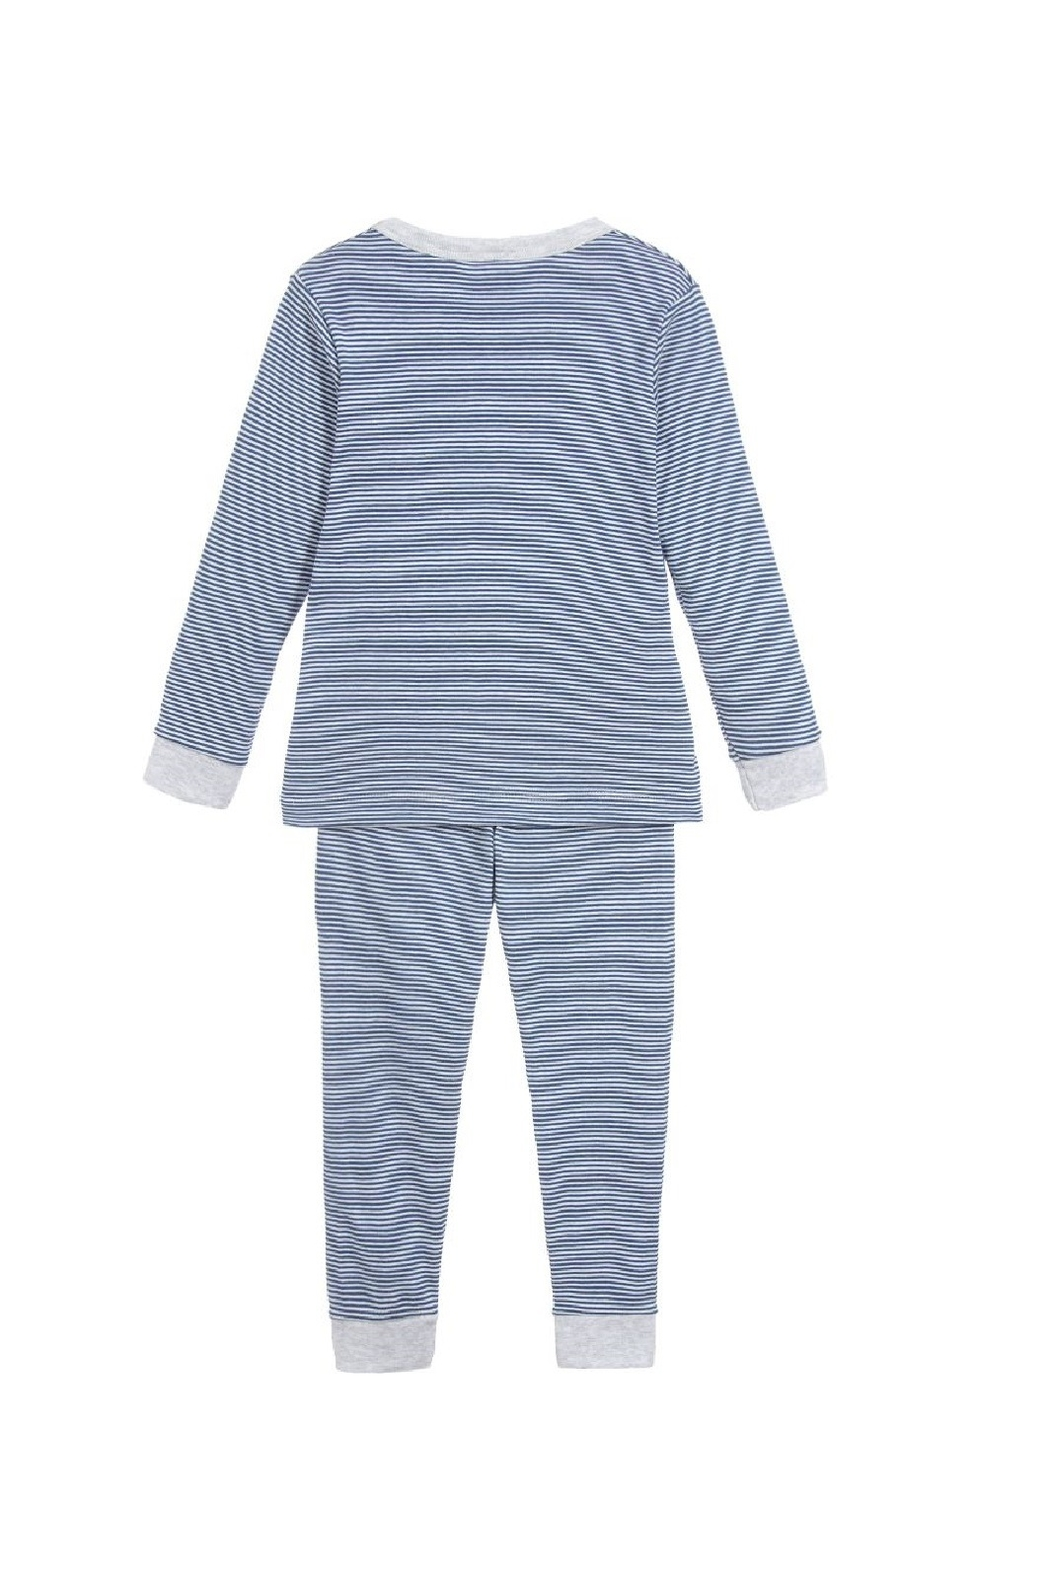 Petit Bateau Boys Pajamas - Milleraies striped knit - Front Full Image